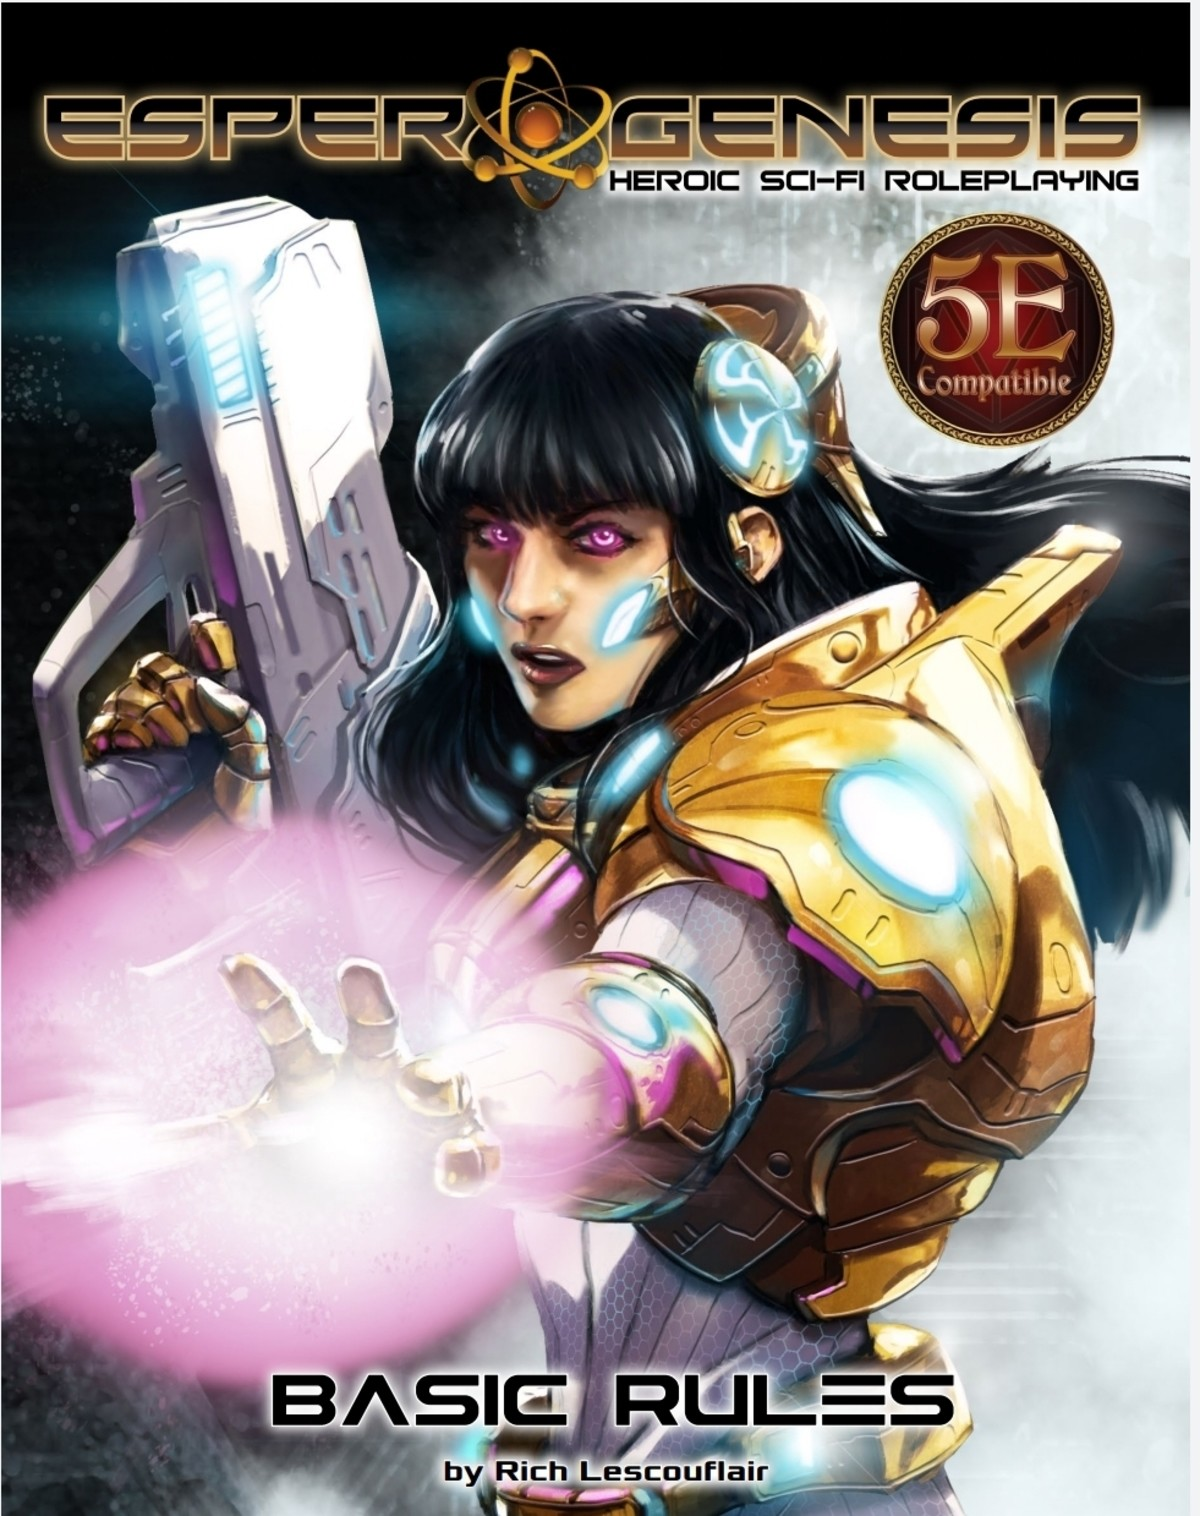 5e Sci-fi/ Space Opera?!?!?! FREE TO TRY?!?!?!. So I figured I'd share this with people on here cause I thought someone might find this interesting! It's basica